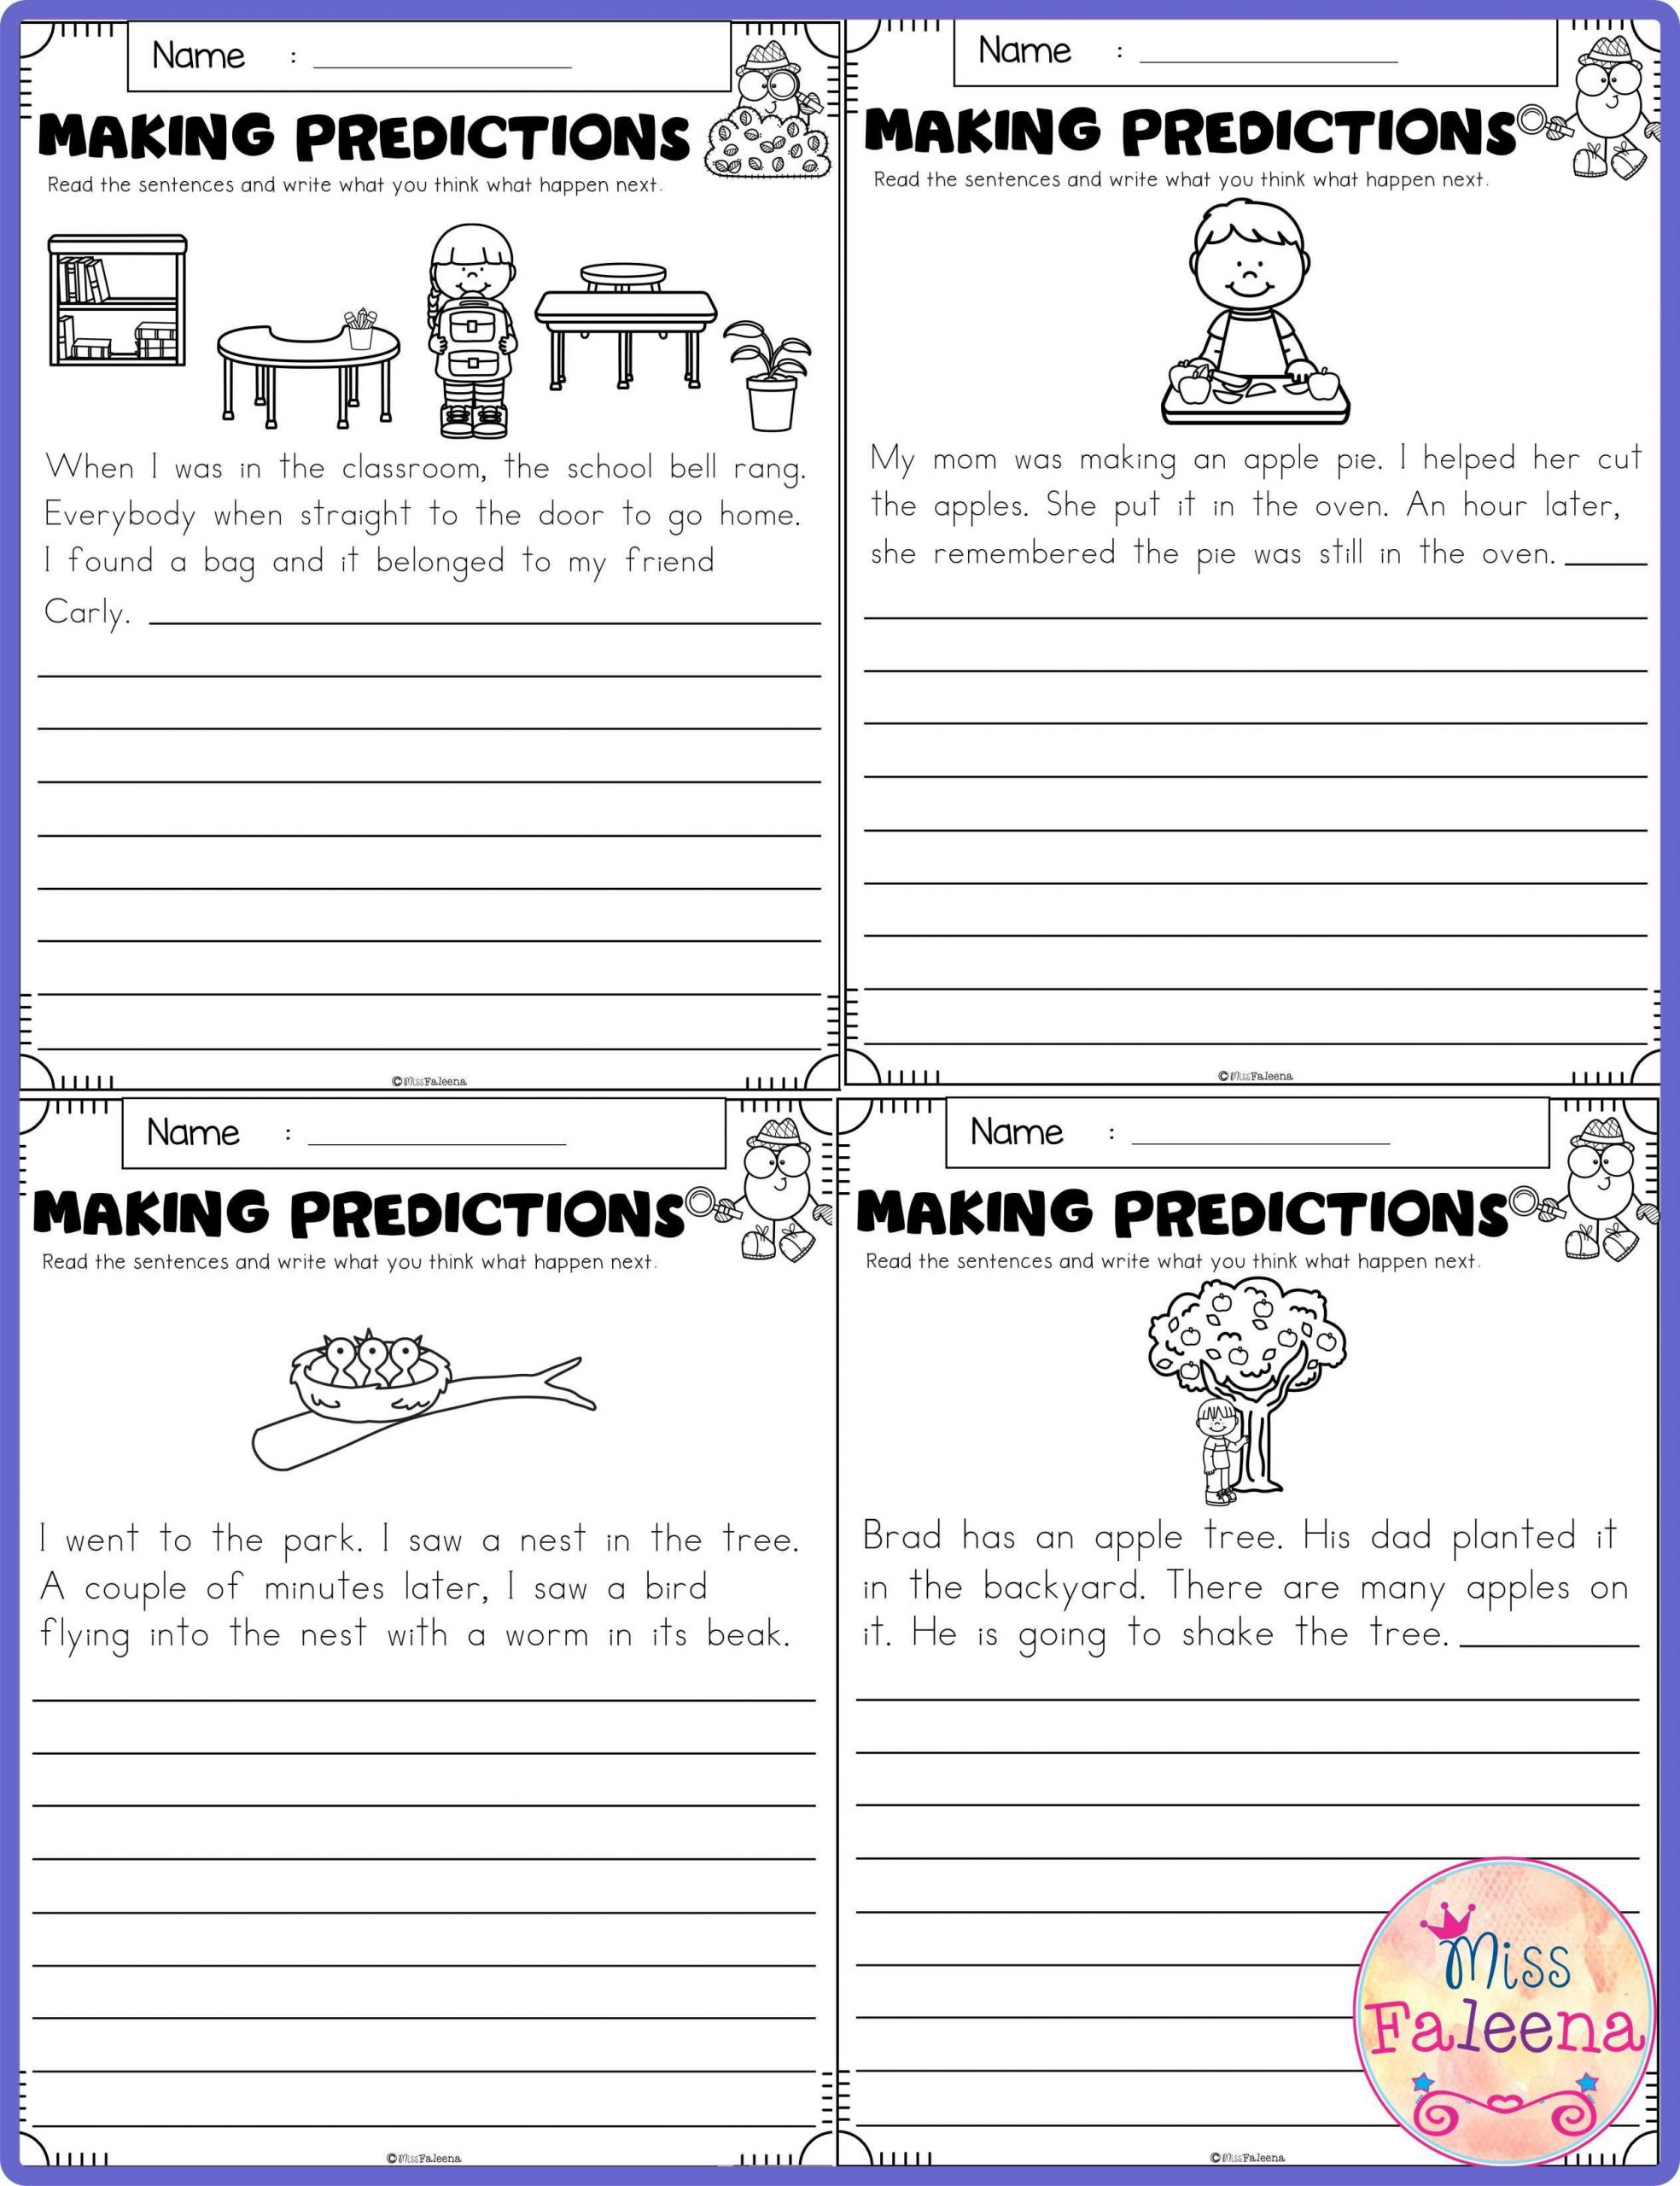 hight resolution of Science Making Predictions Worksheet   Printable Worksheets and Activities  for Teachers